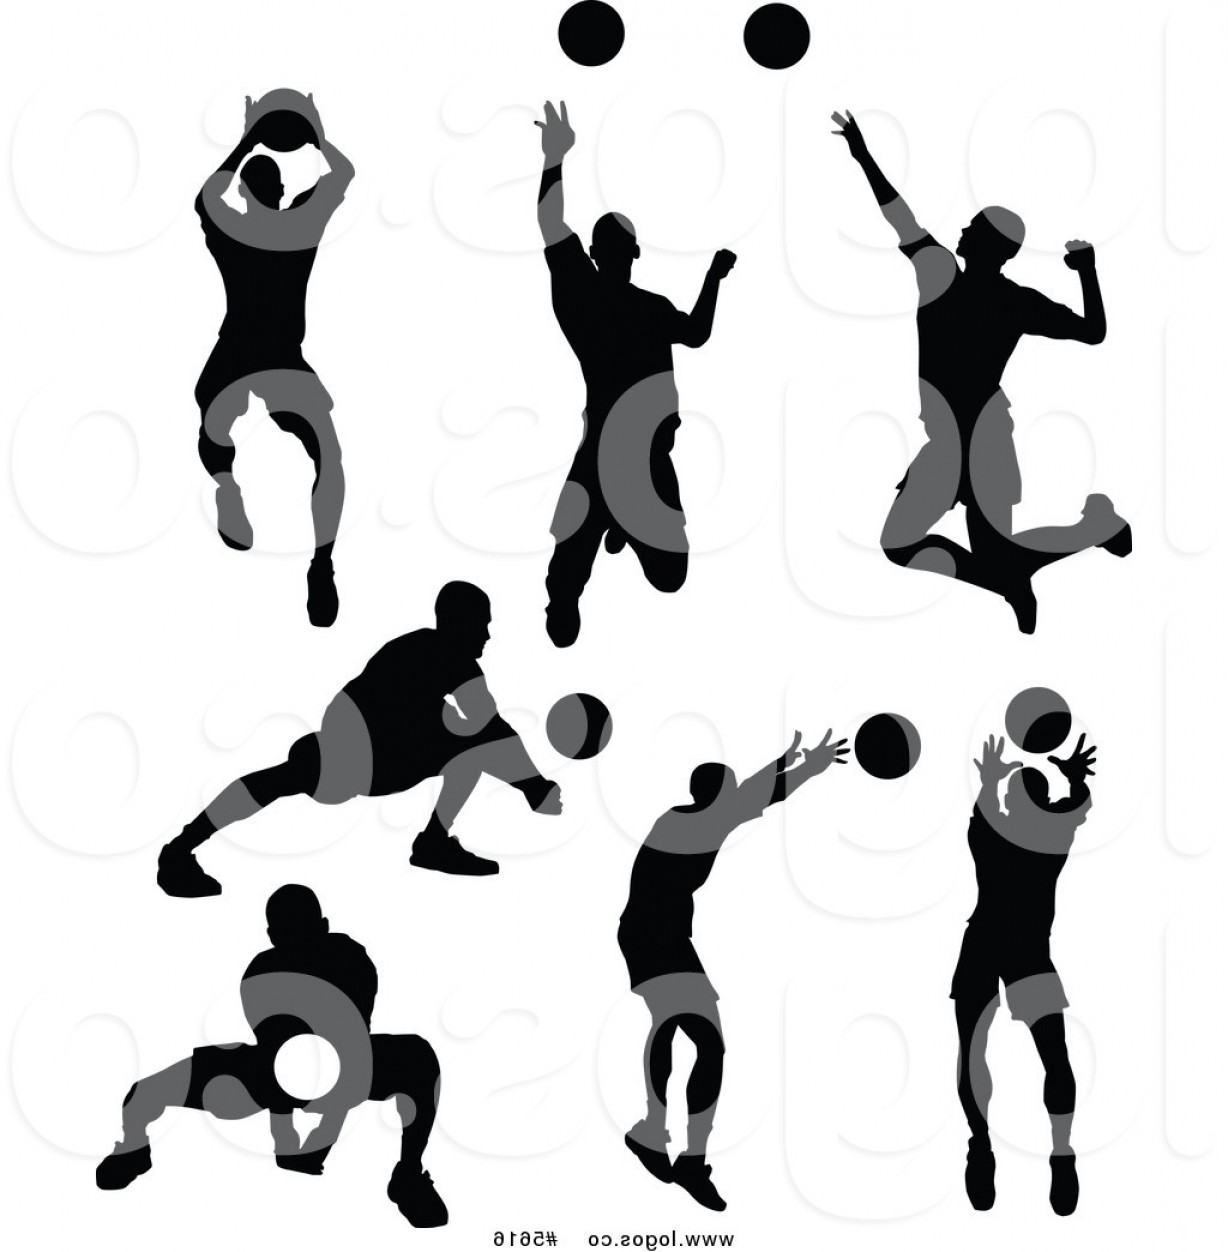 Volleyball Player Vector: Royalty Free Vector Of Logos Of Silhouetted Male Volleyball Players By Chromaco